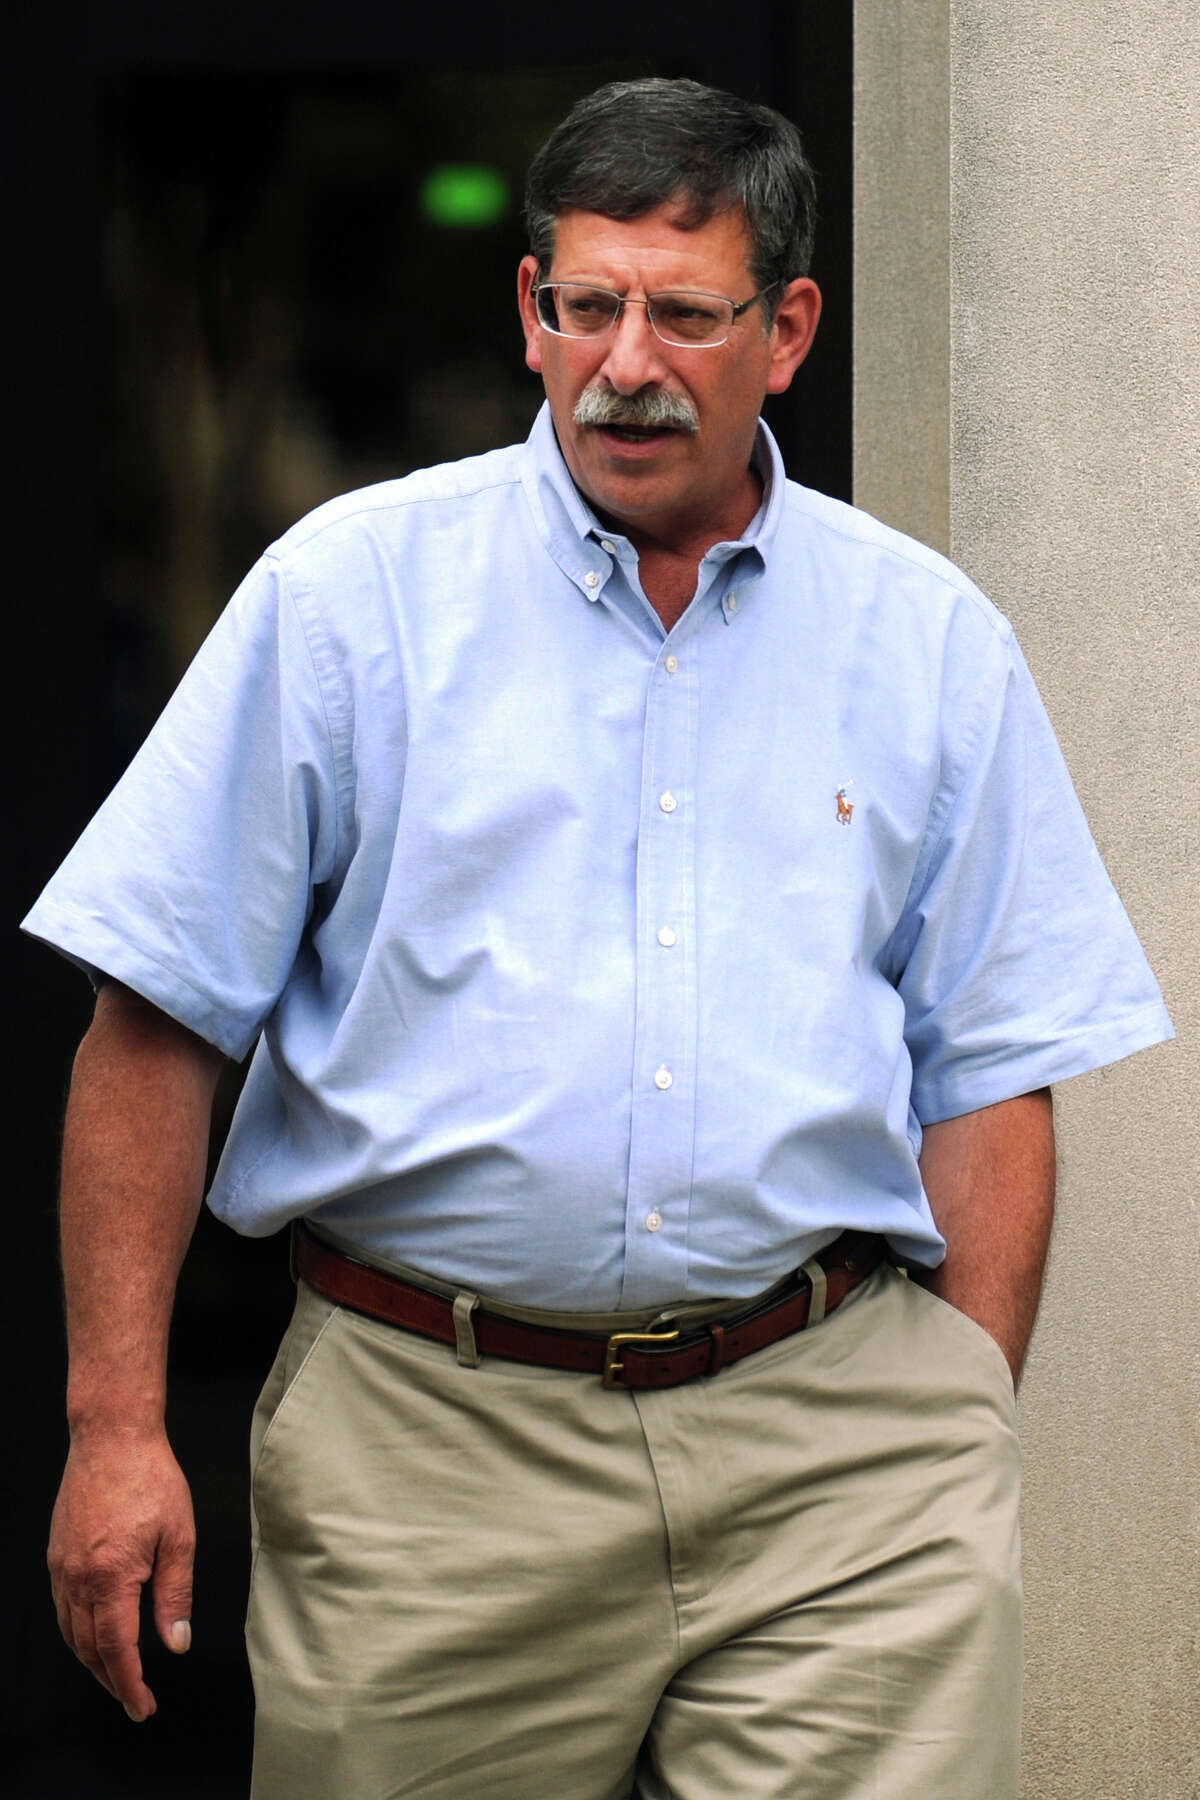 David Laguercia leaves the Federal Courthouse, in Bridgeport, Conn., after pleading guilty to technical violations to federal firearms laws. Laguercia is the owner of Riverview Sales, a gun store in East Windsor where Nancy Lanza bought the semiautomatic rifle that her son, Adam, used at Sandy Hook Elementary School last December.